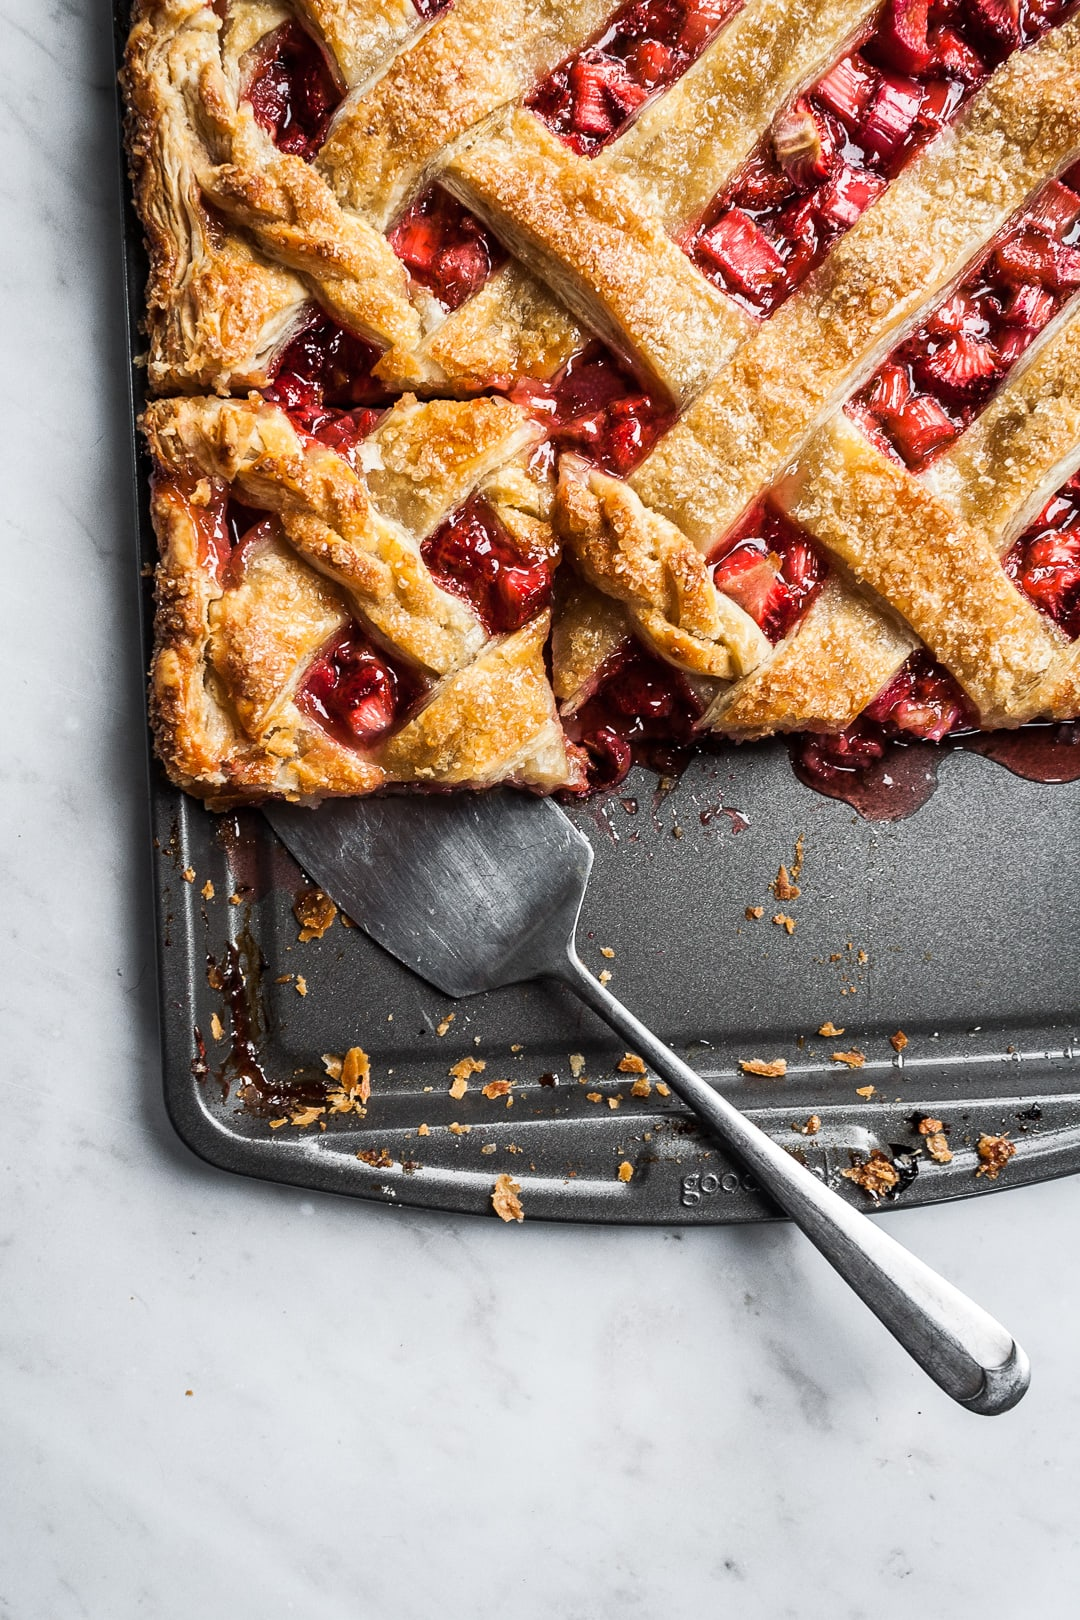 Baked strawberry rhubarb slab pie with a piece cut and being lifted by a serving utensil